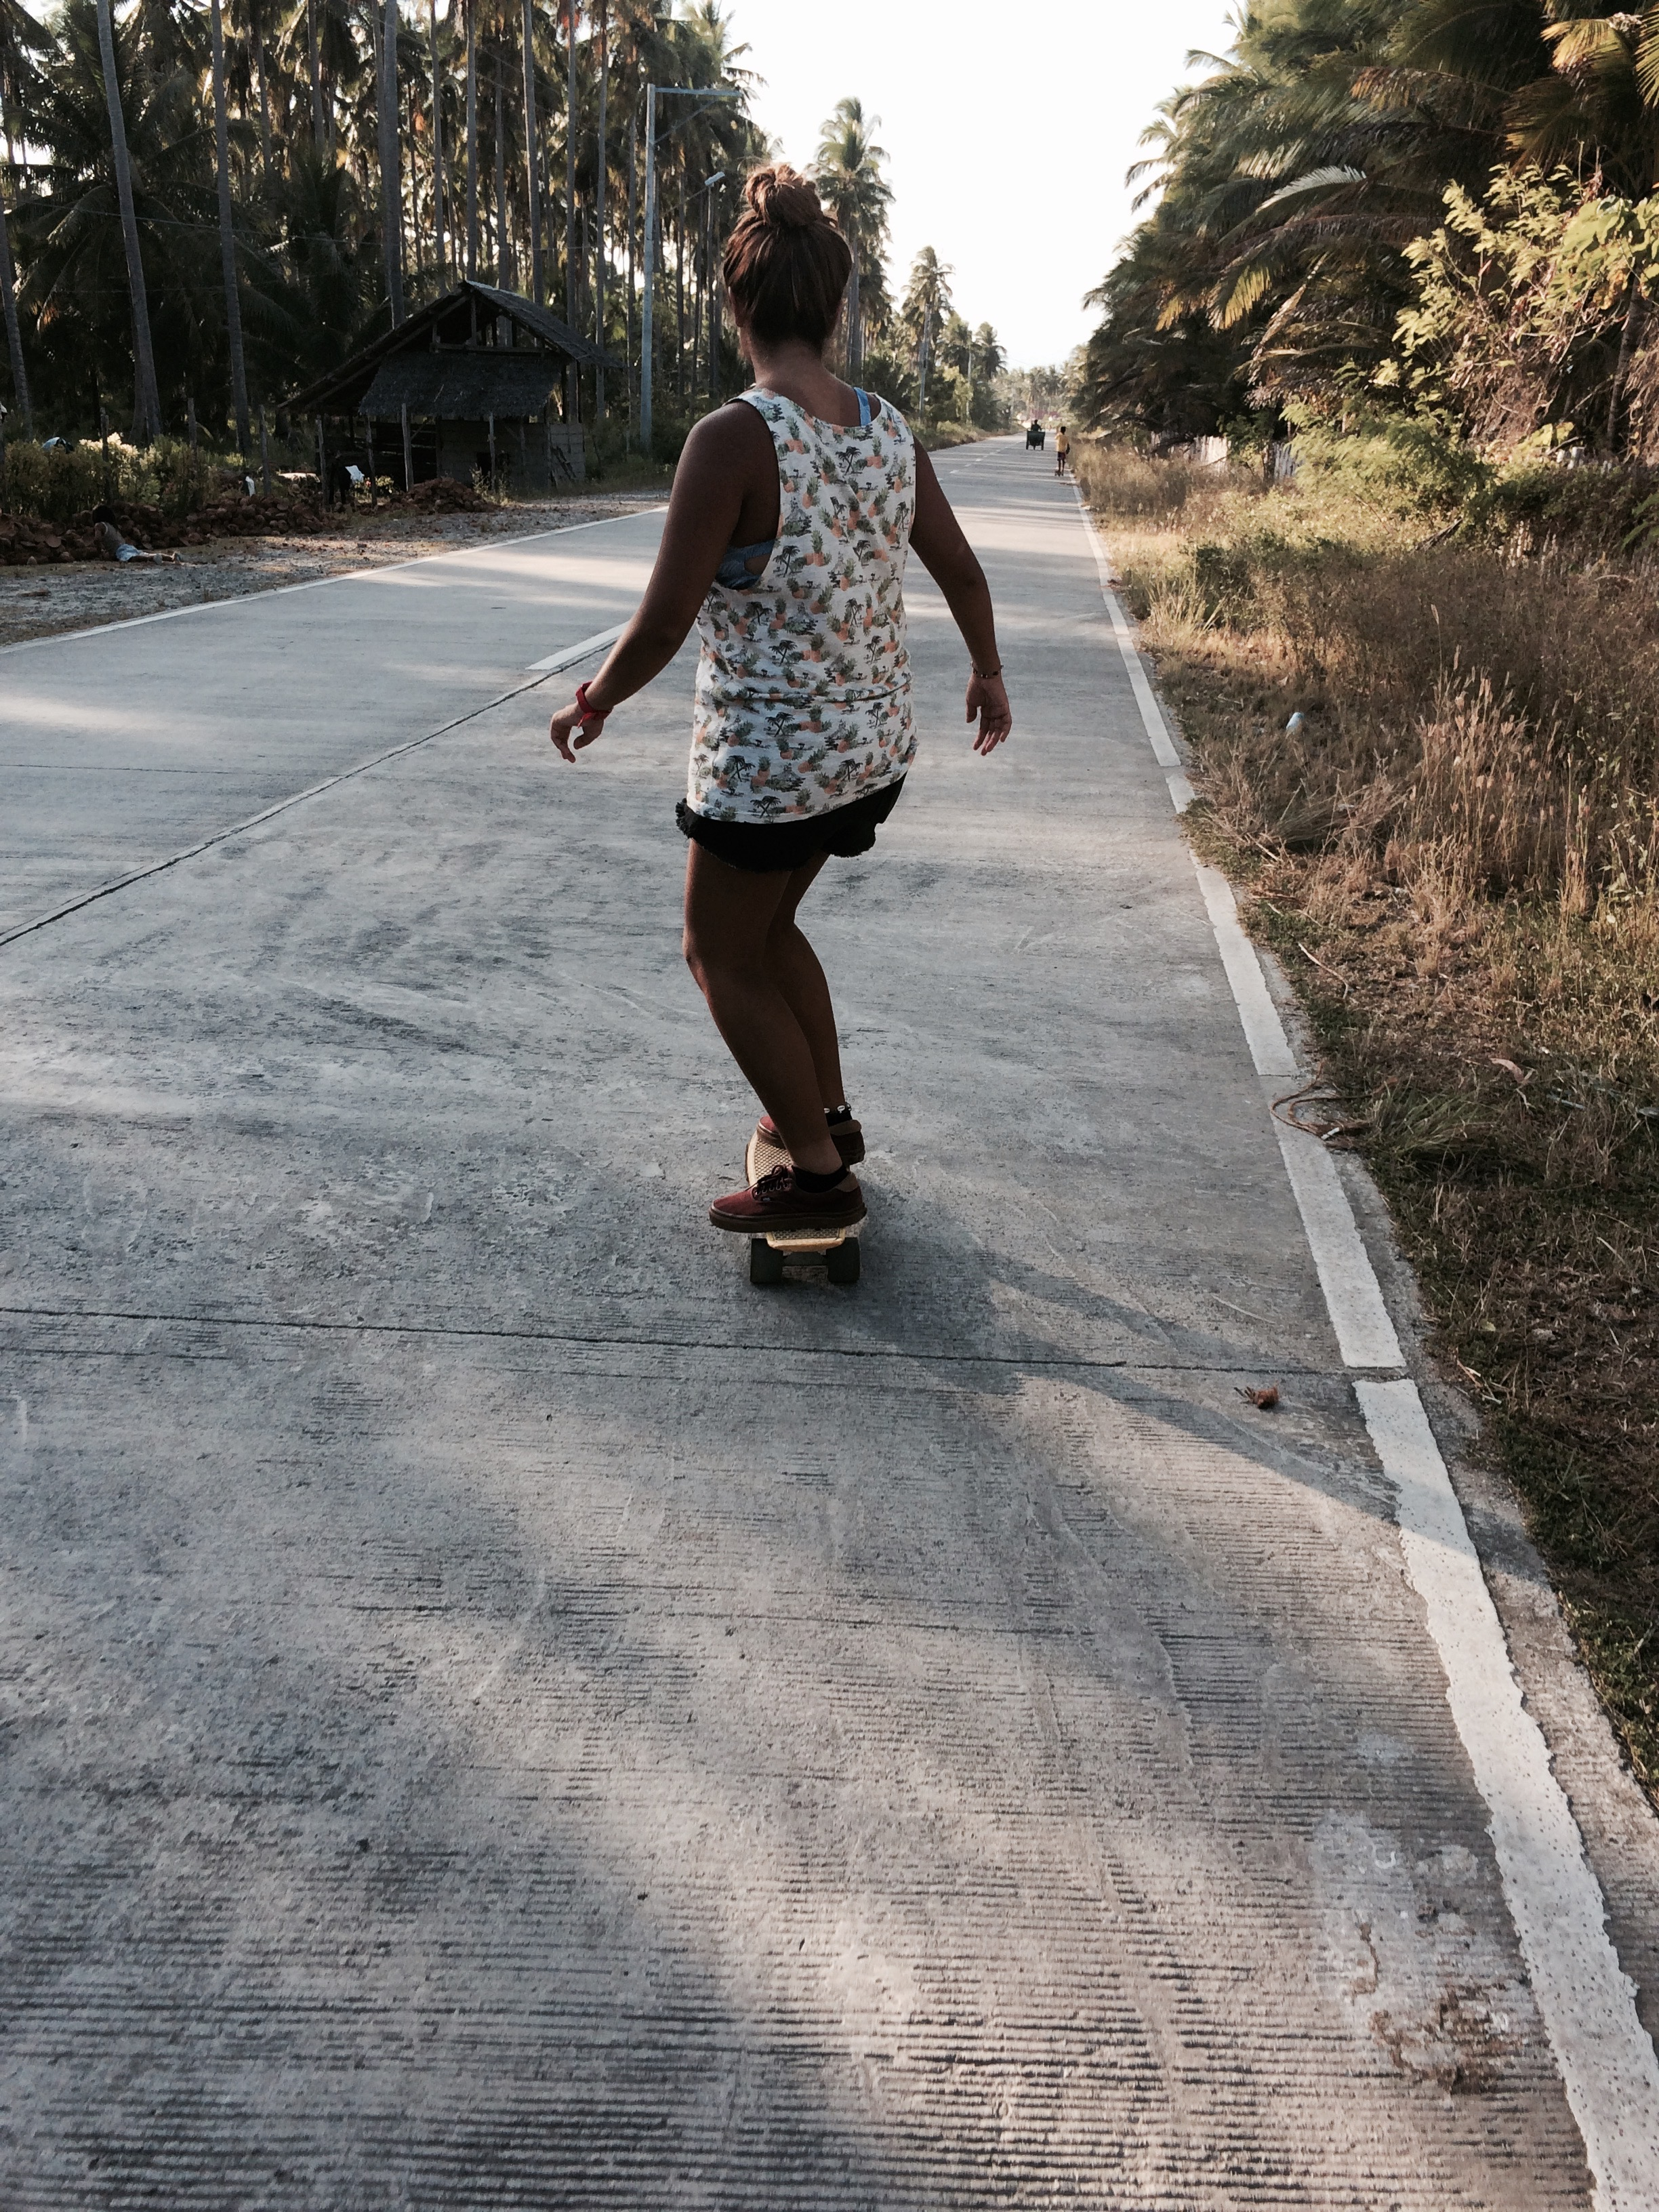 The best skating experience is on a semi-deserted coastal road where you could still see the waves.